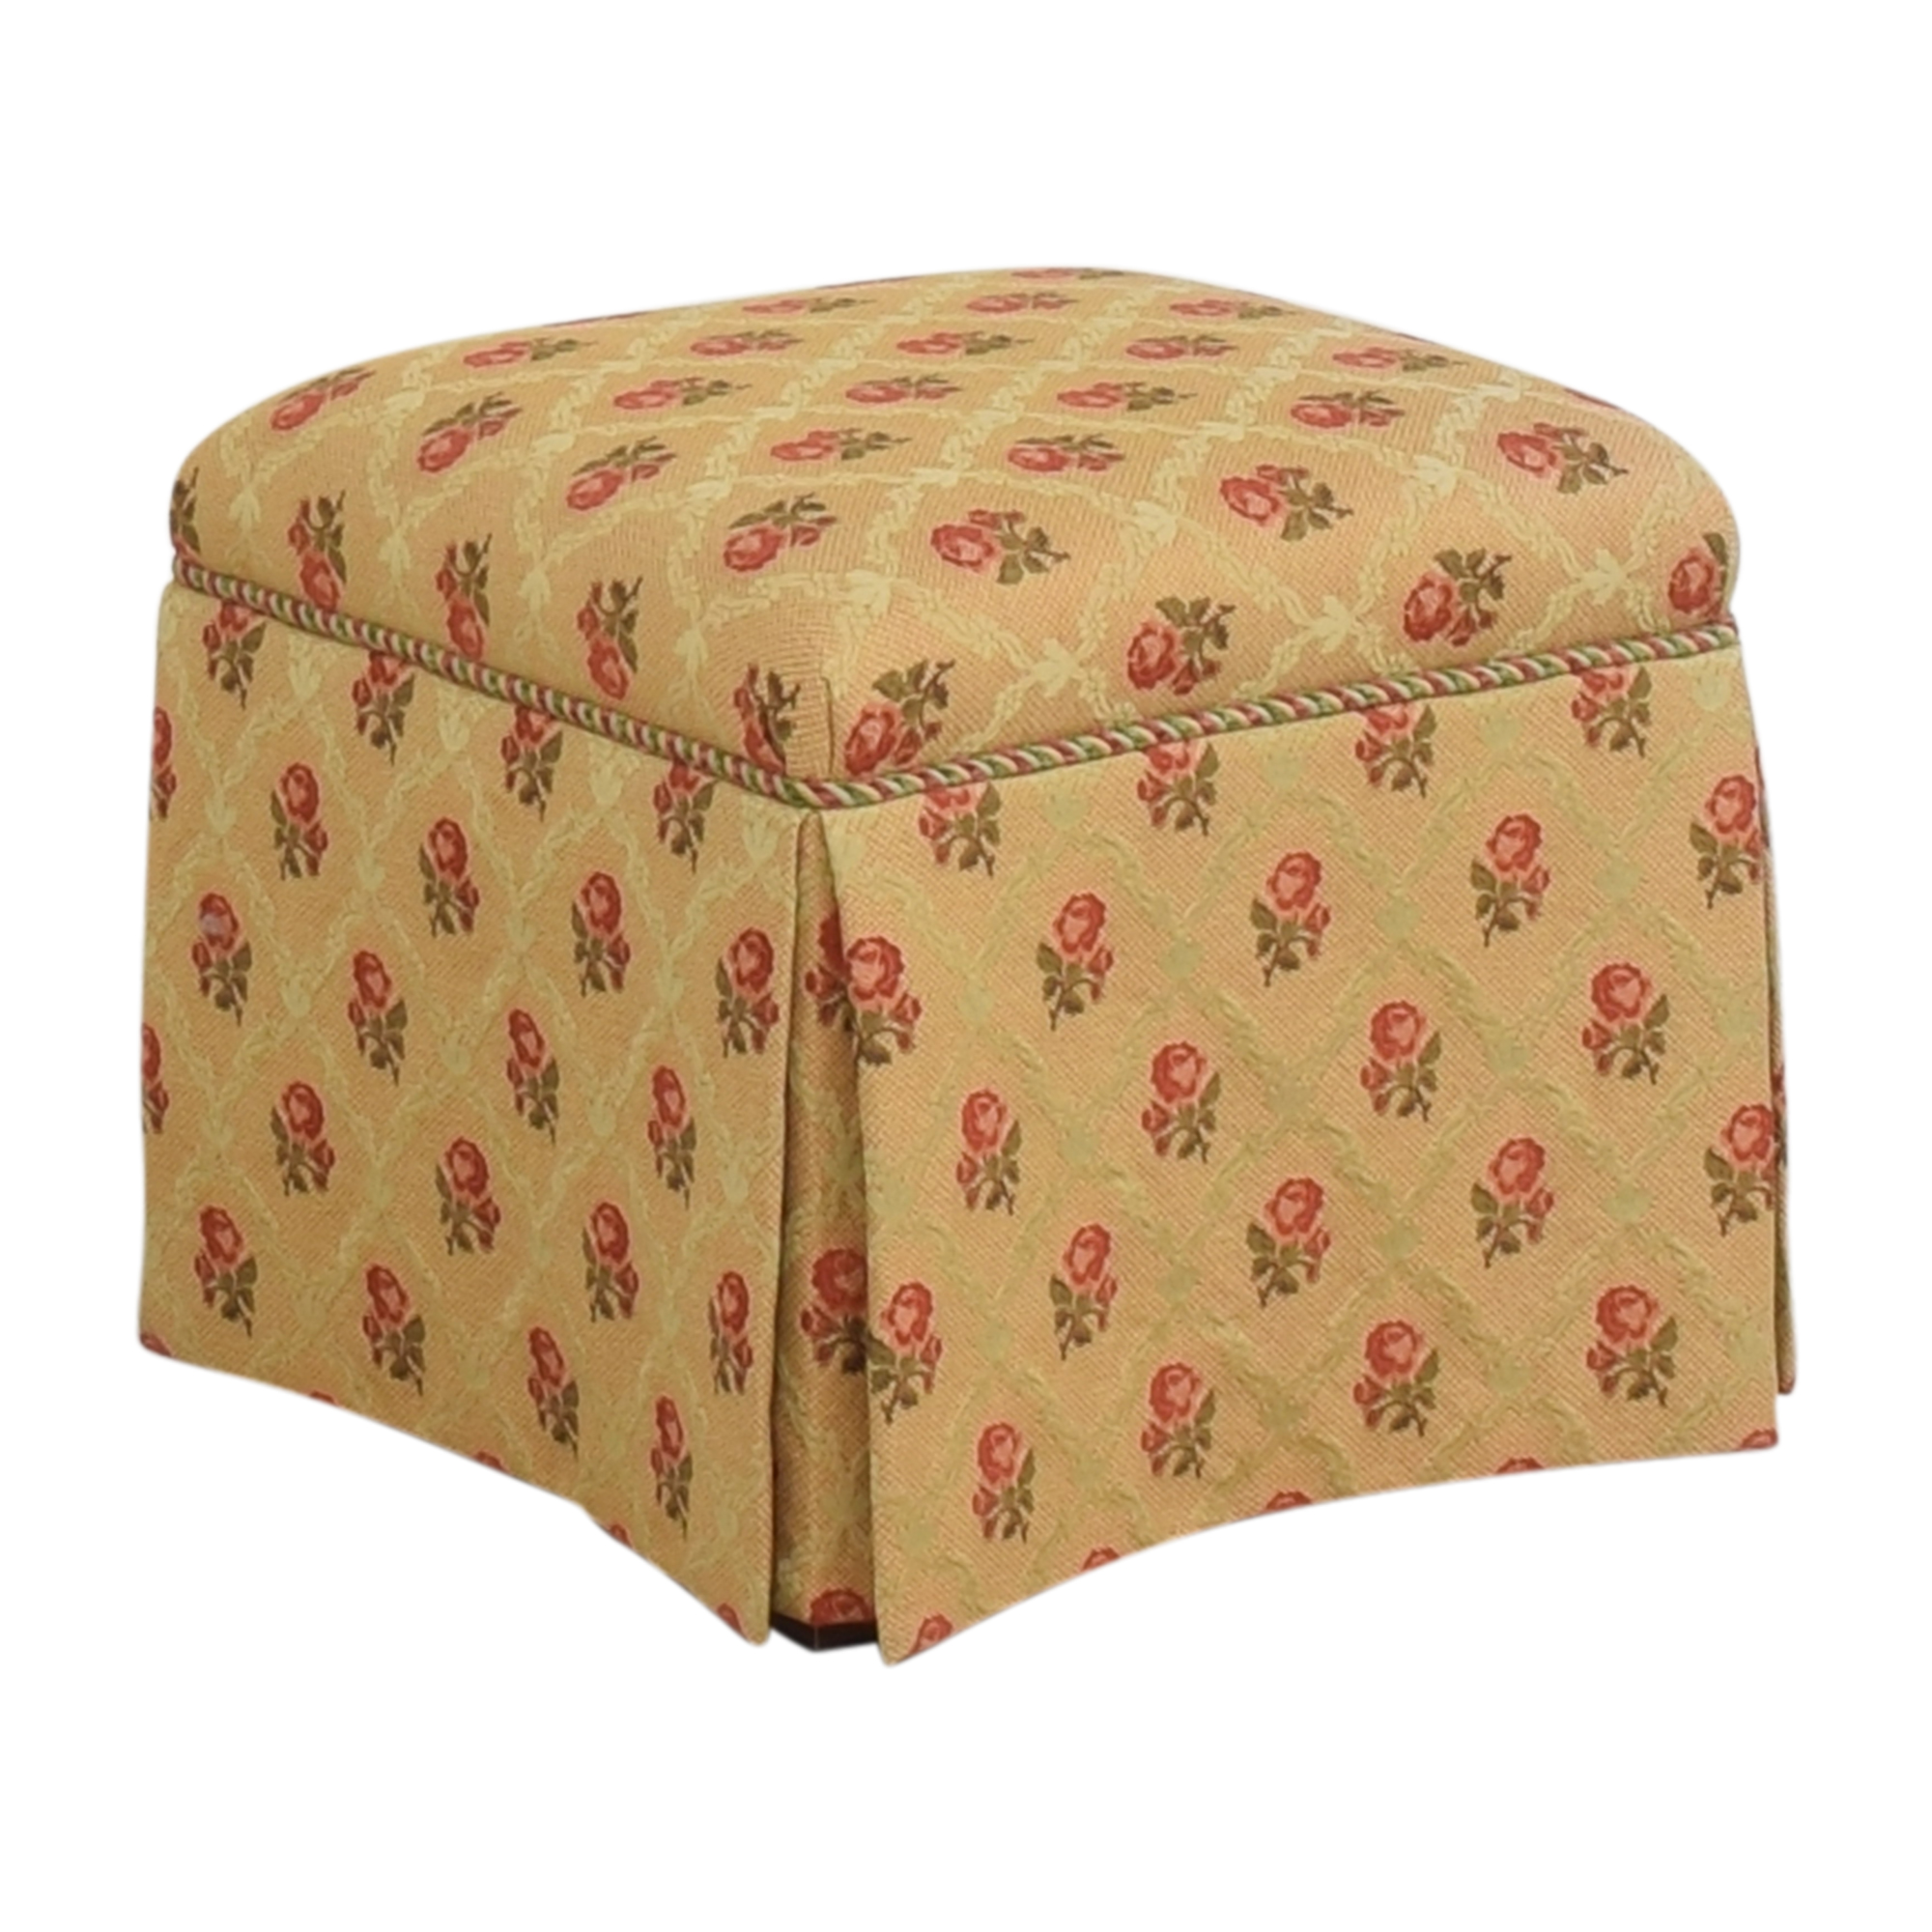 Skirted Square Ottoman second hand